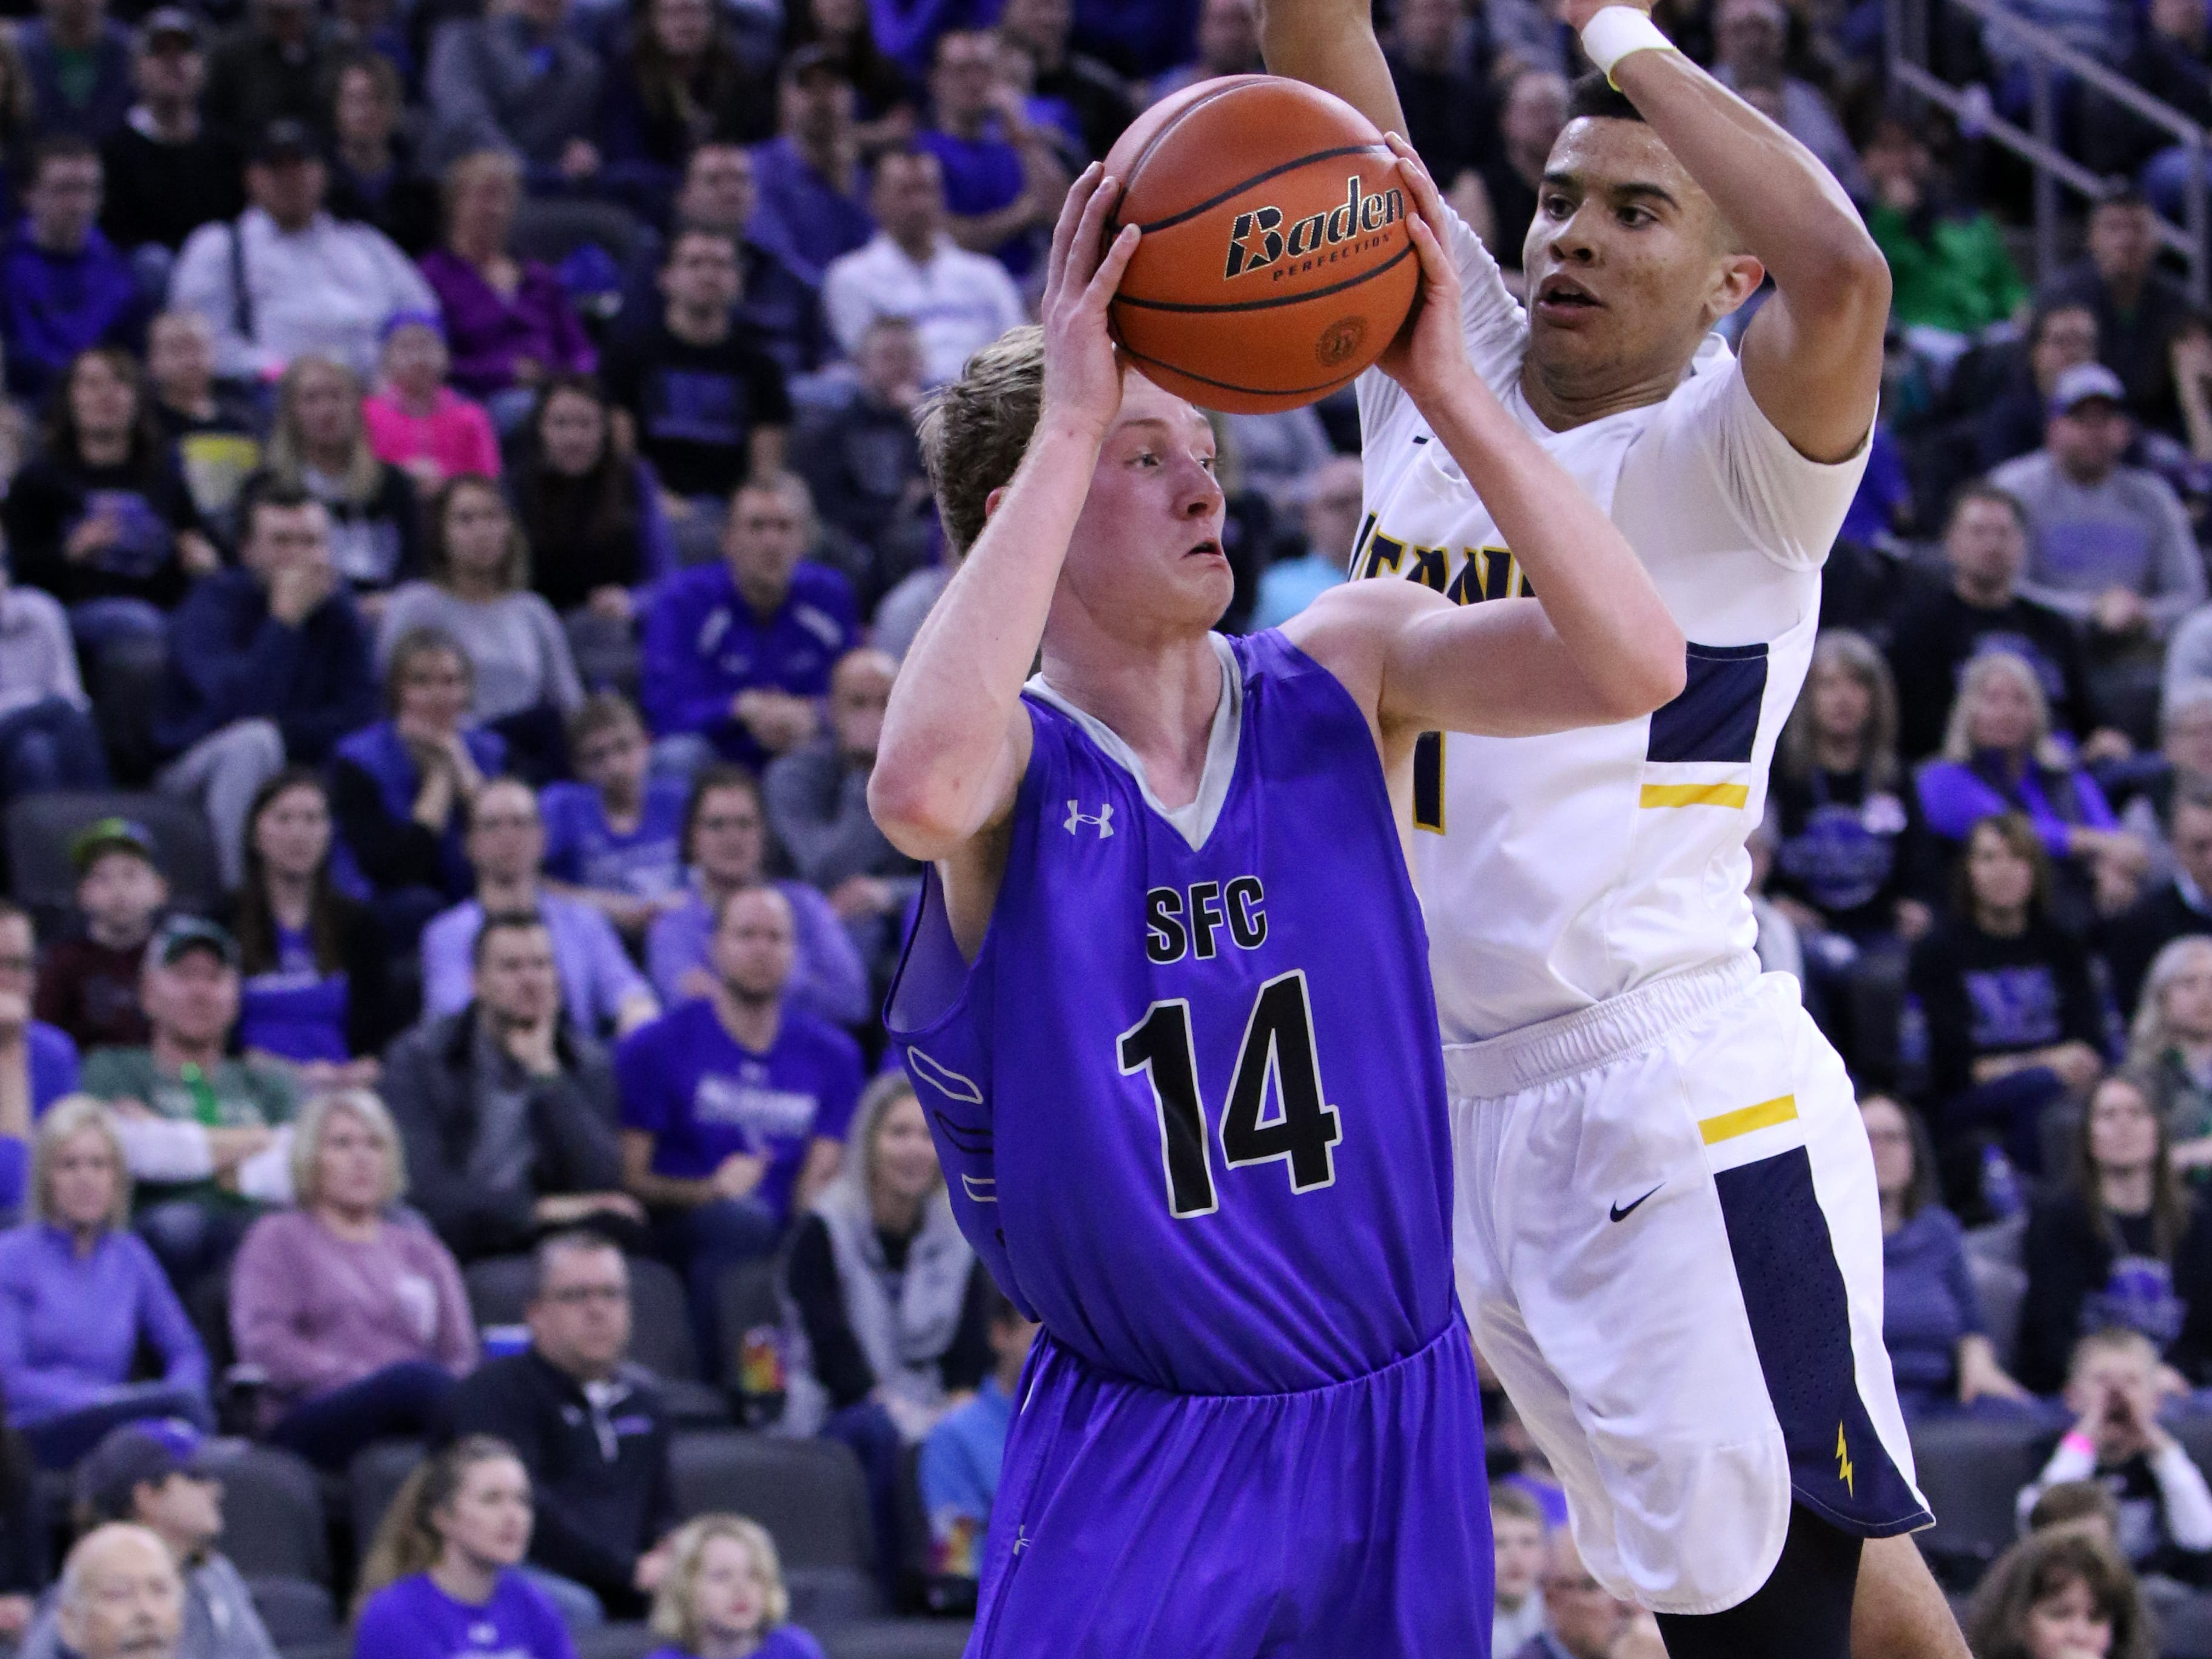 Gavin Schipper of Sioux Falls Christian has his shot blocked by Justin Hohn of Tea Area during Saturday's Class A title game at the Premier Center.